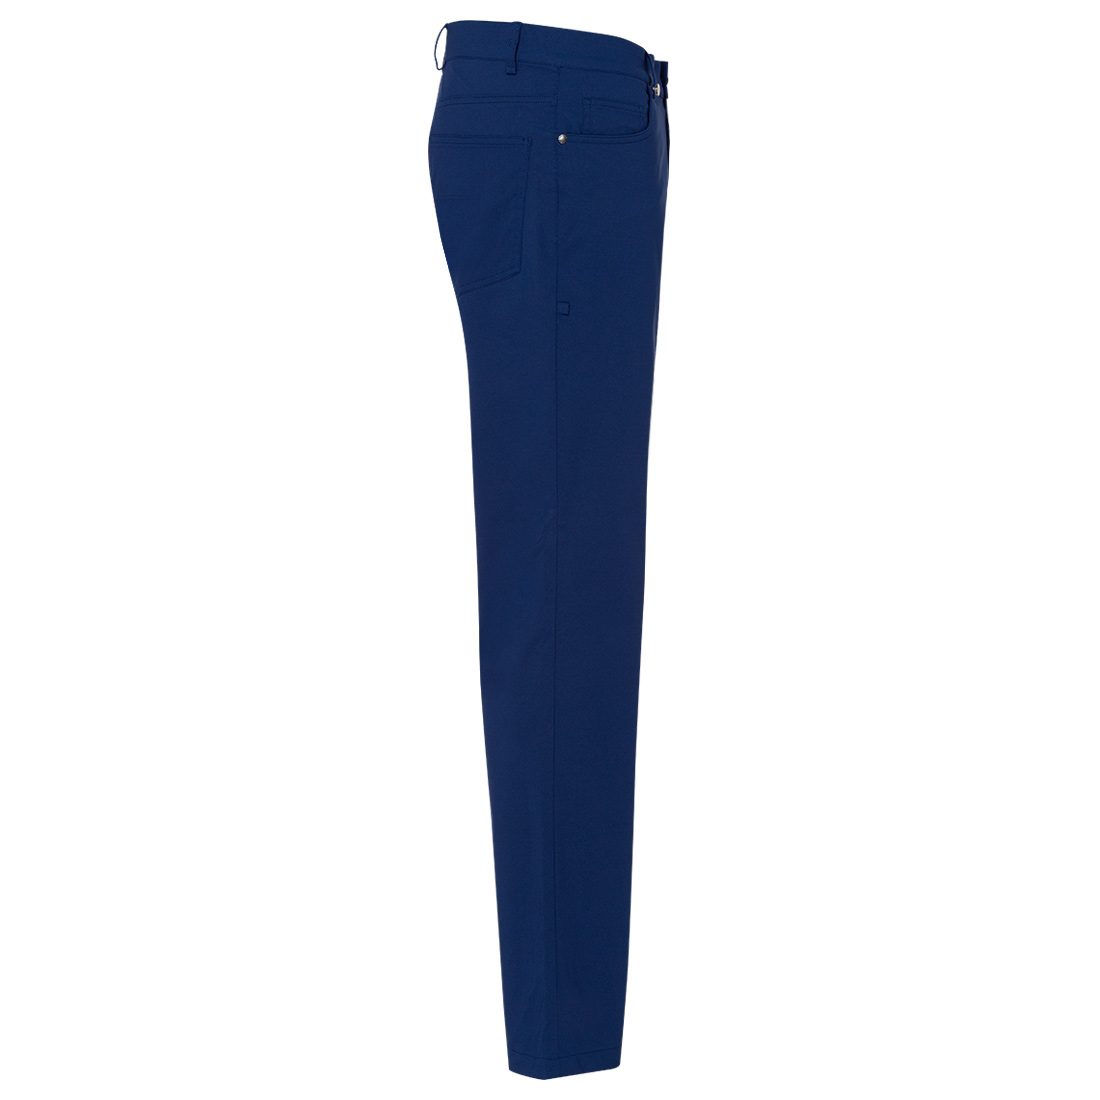 5-Pocket Golfhose Stretch-Performance in Slim Fit mit UV-Schutz